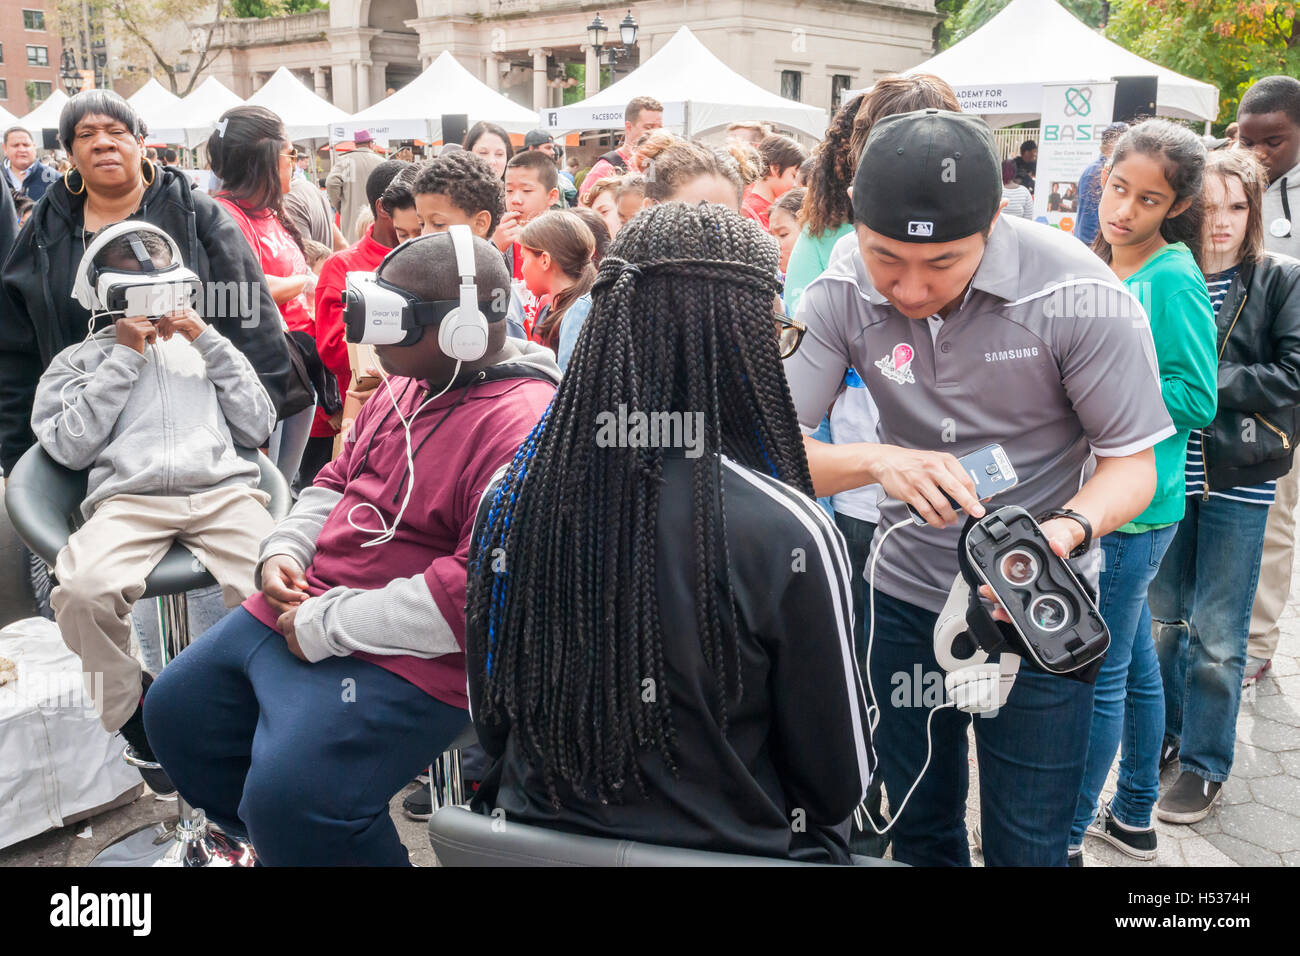 Participants in the Geek Street Fair in Union Square Park in New York experiment with Samsung Oculus VR headsets - Stock Image